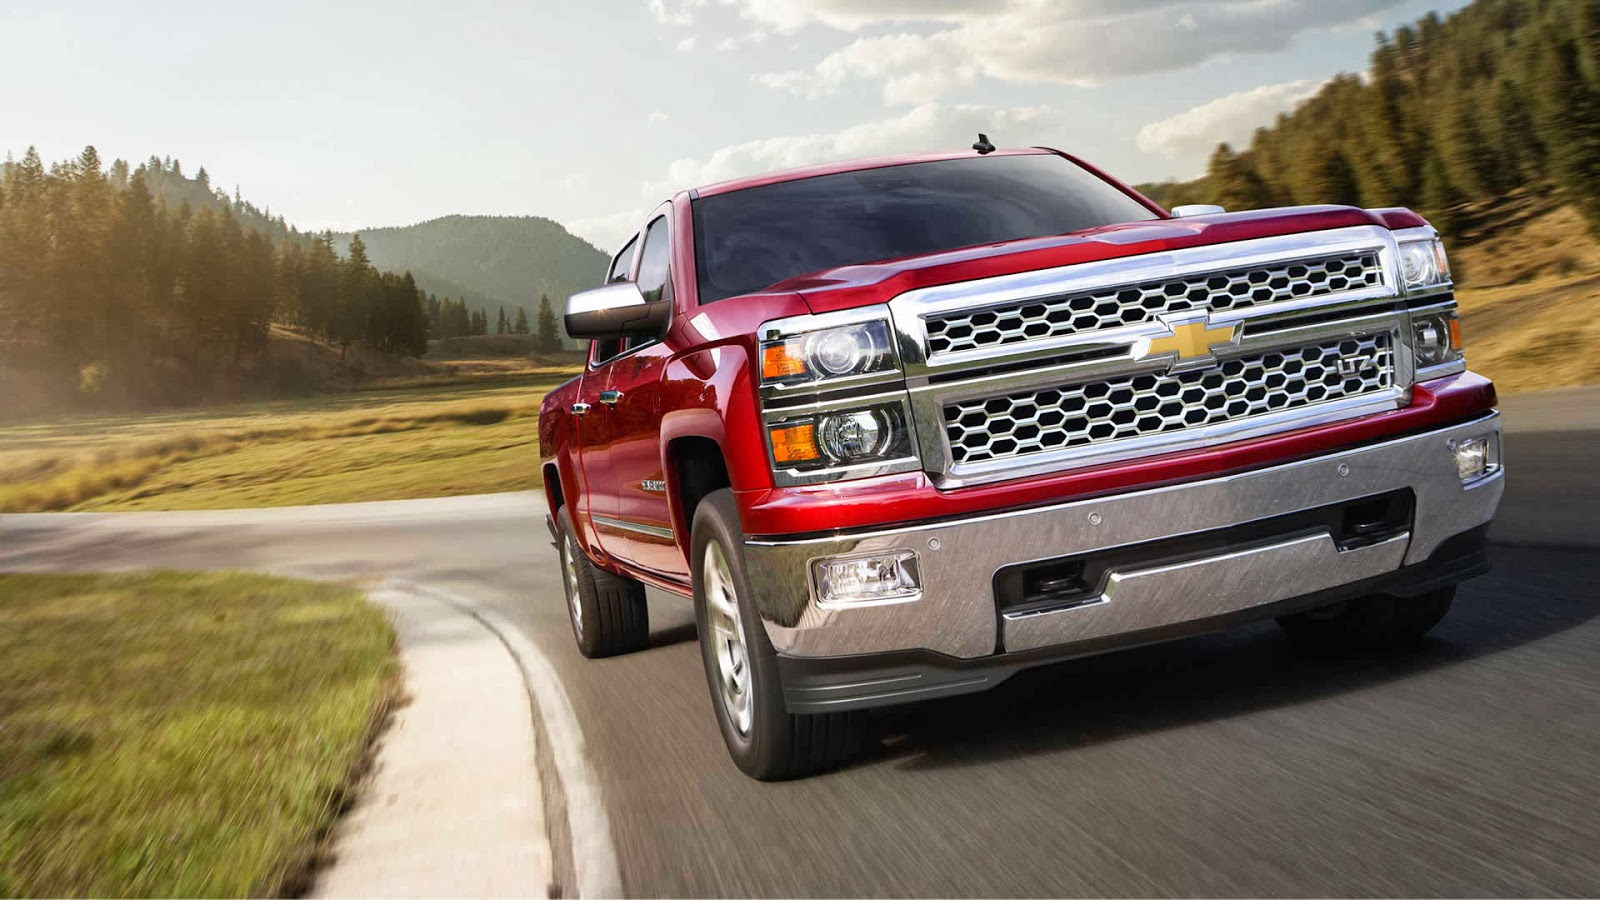 2014 Chevy Impala & Silverado Honored With Cars.com Best of 2014